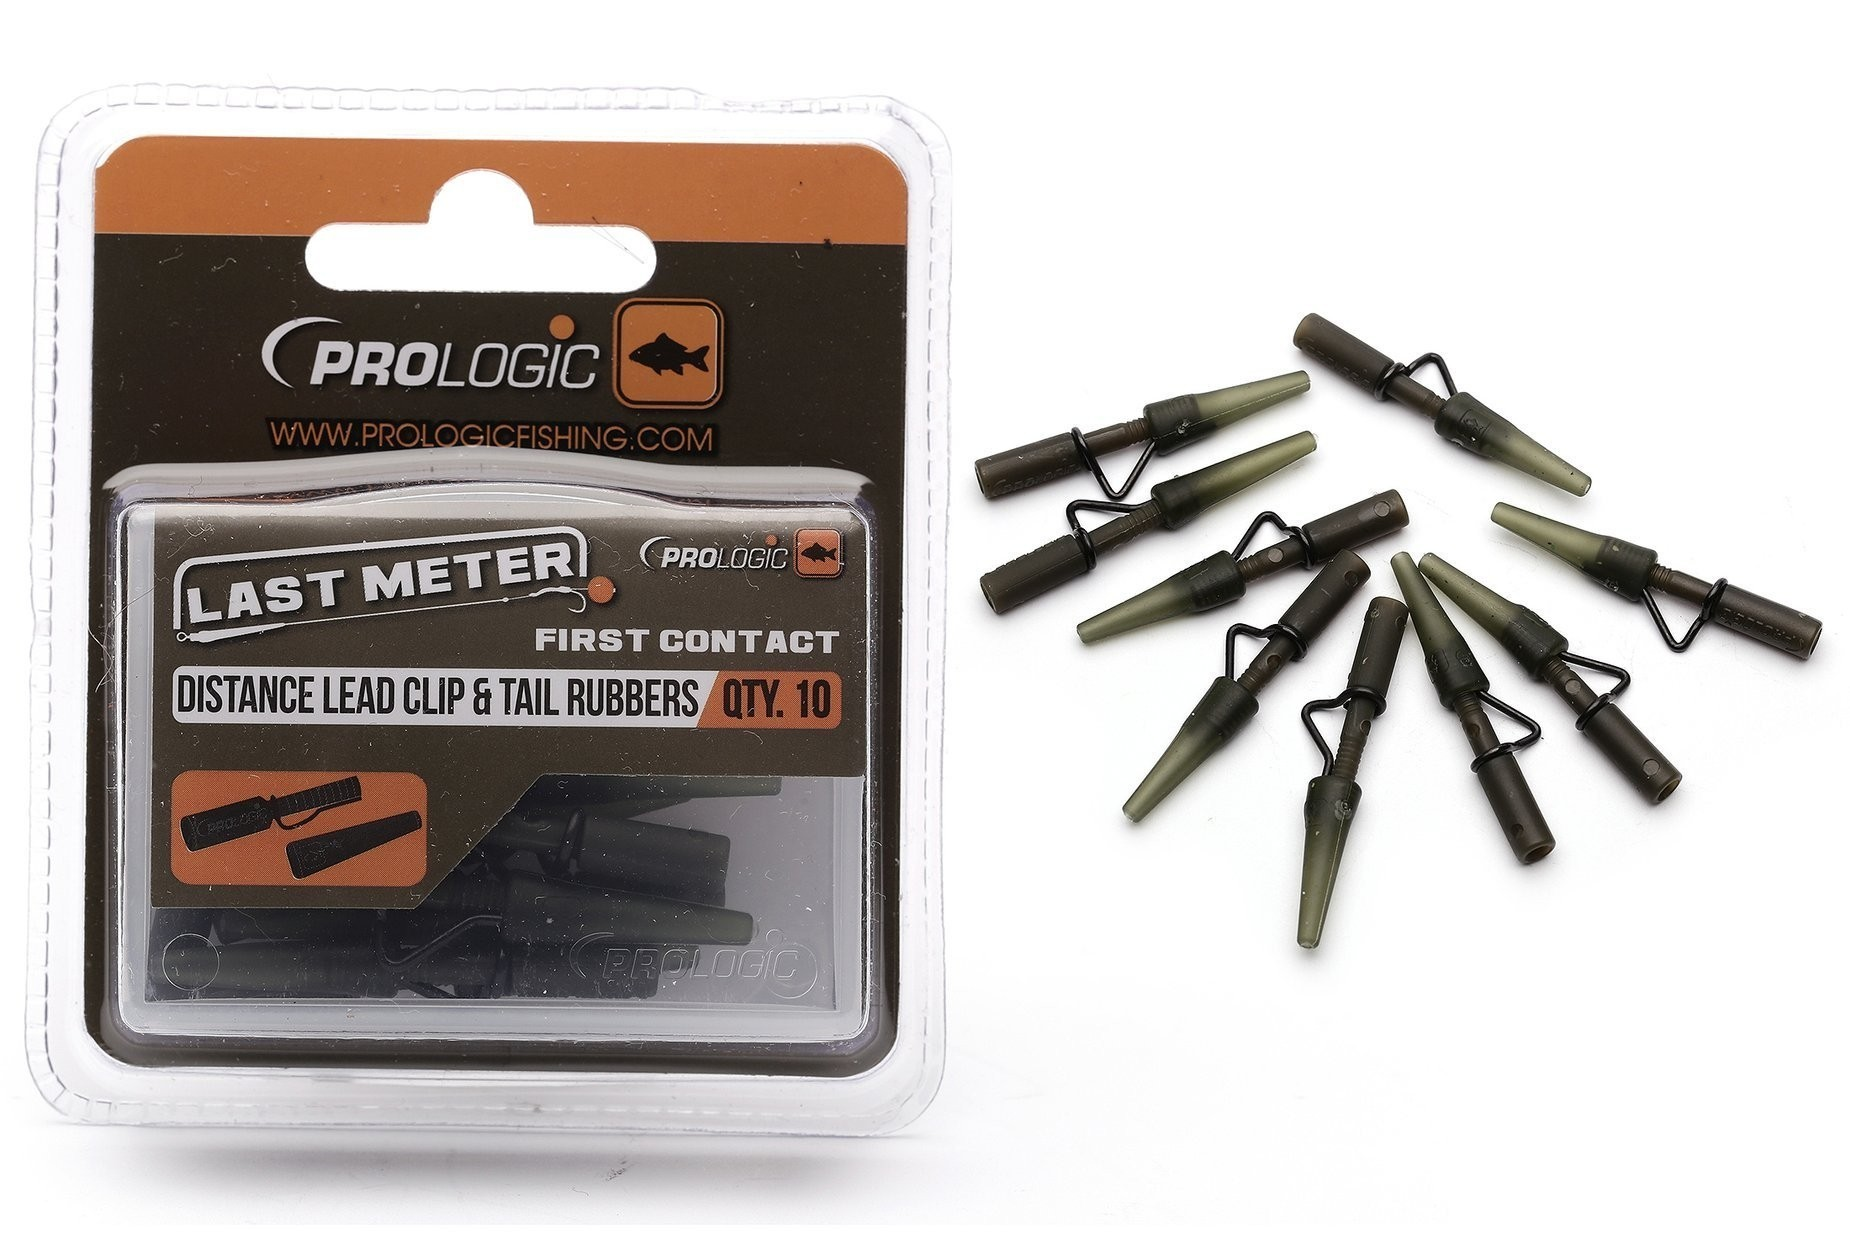 Prologic Distance Lead Clip & Tail Rubbers 49887